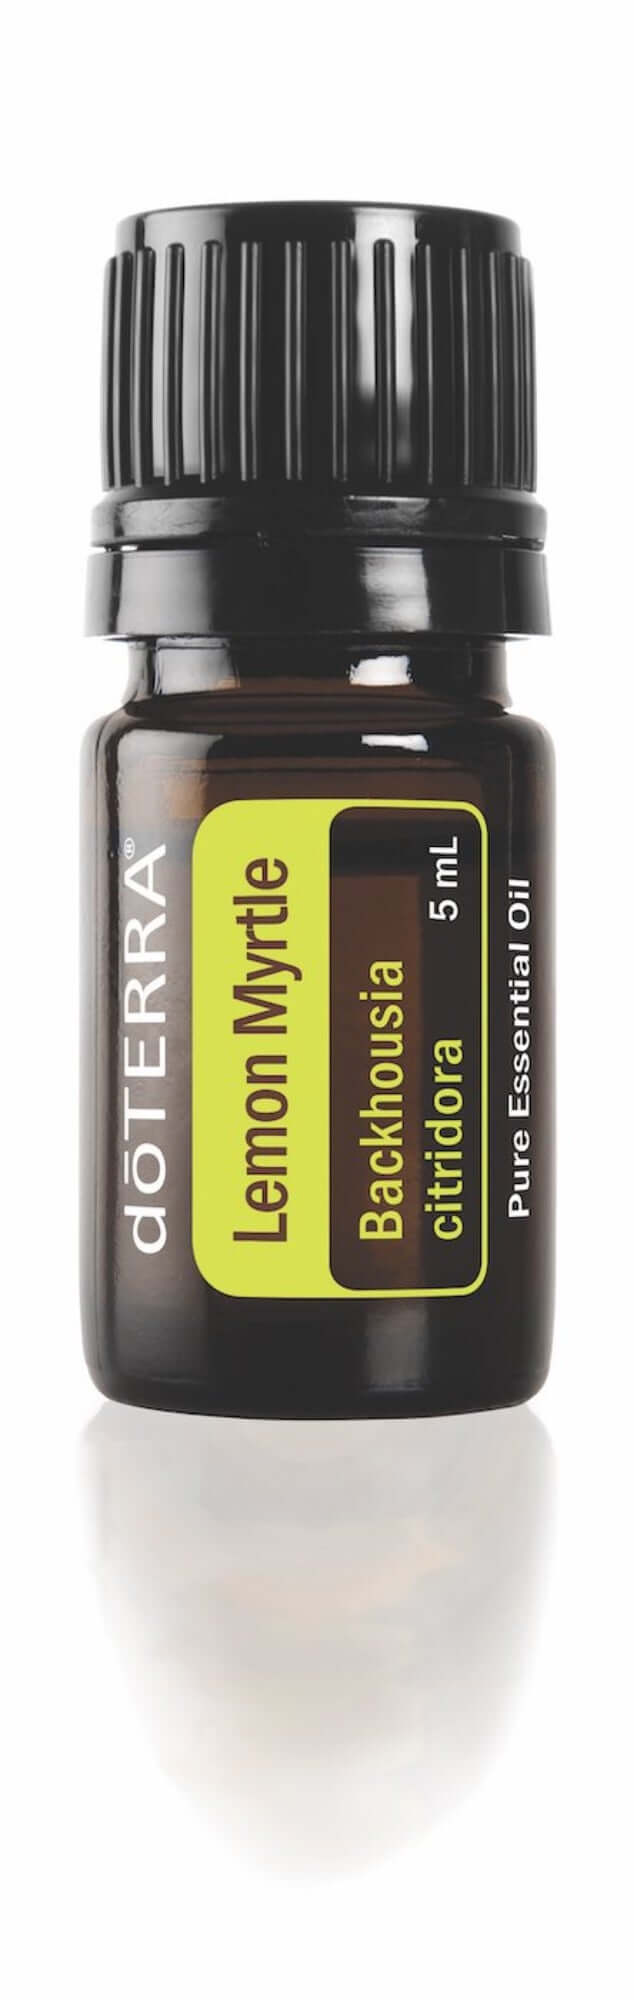 doTERRA Lemon Myrtle Oil